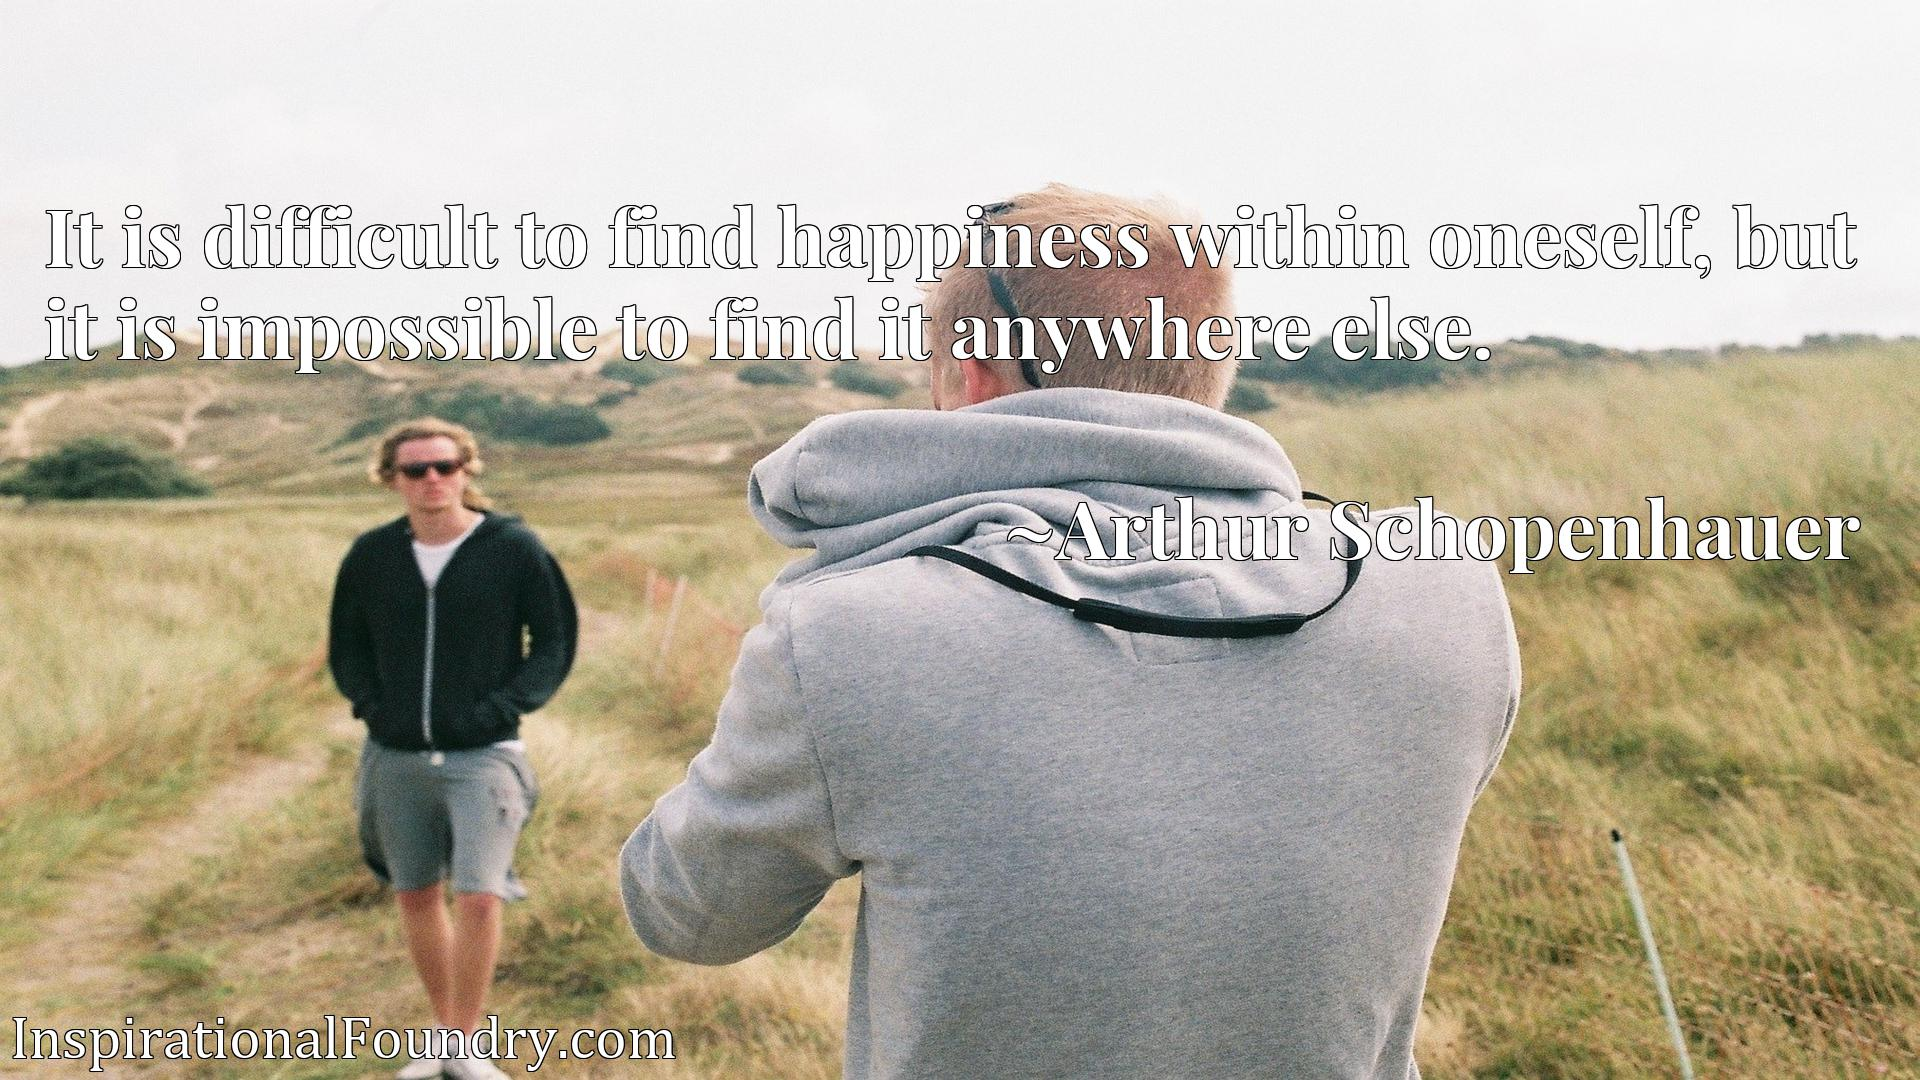 It is difficult to find happiness within oneself, but it is impossible to find it anywhere else.